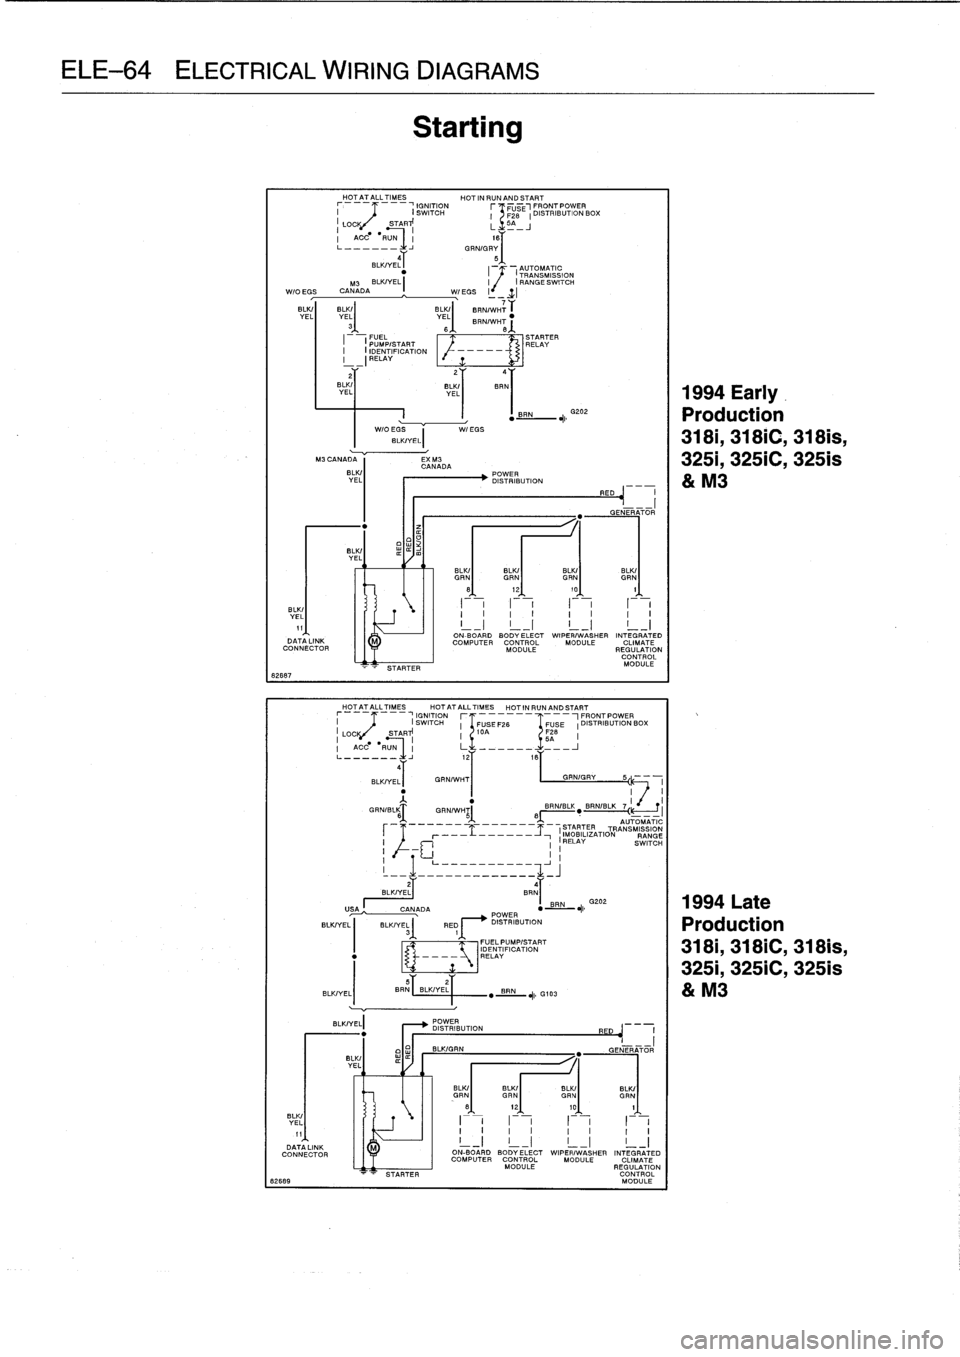 White Rodgers 50e47 843 Wiring Diagram